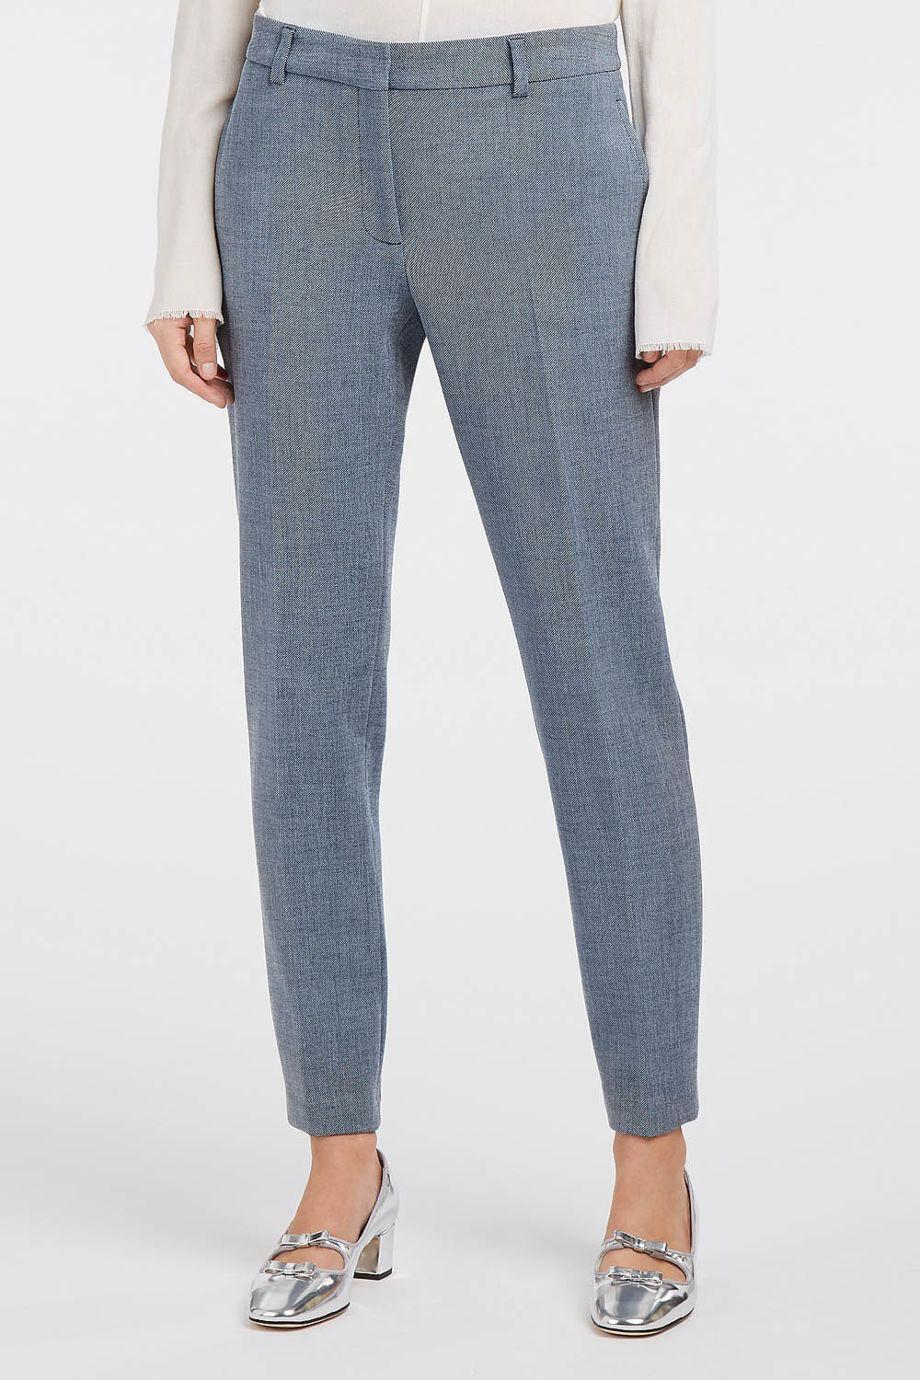 Paul & Joe Sister Volume Stretch-Twill Trousers